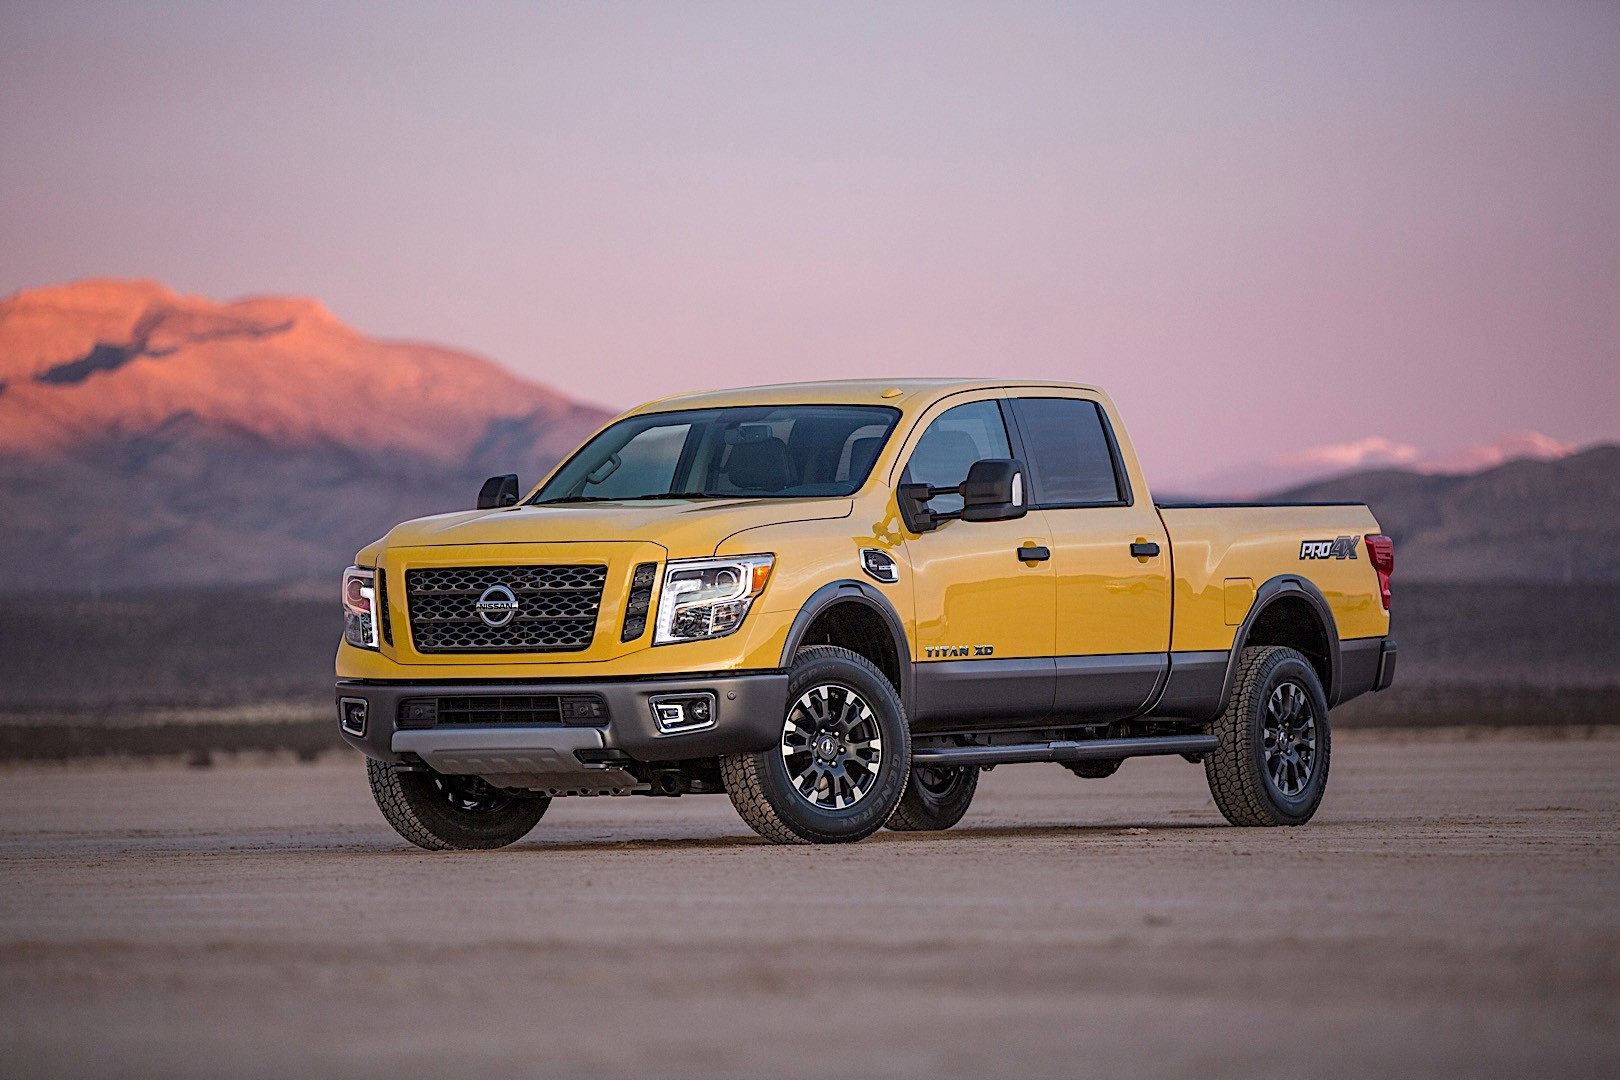 nissan titan xd crew cab specs 2015 2016 2017 2018 autoevolution. Black Bedroom Furniture Sets. Home Design Ideas